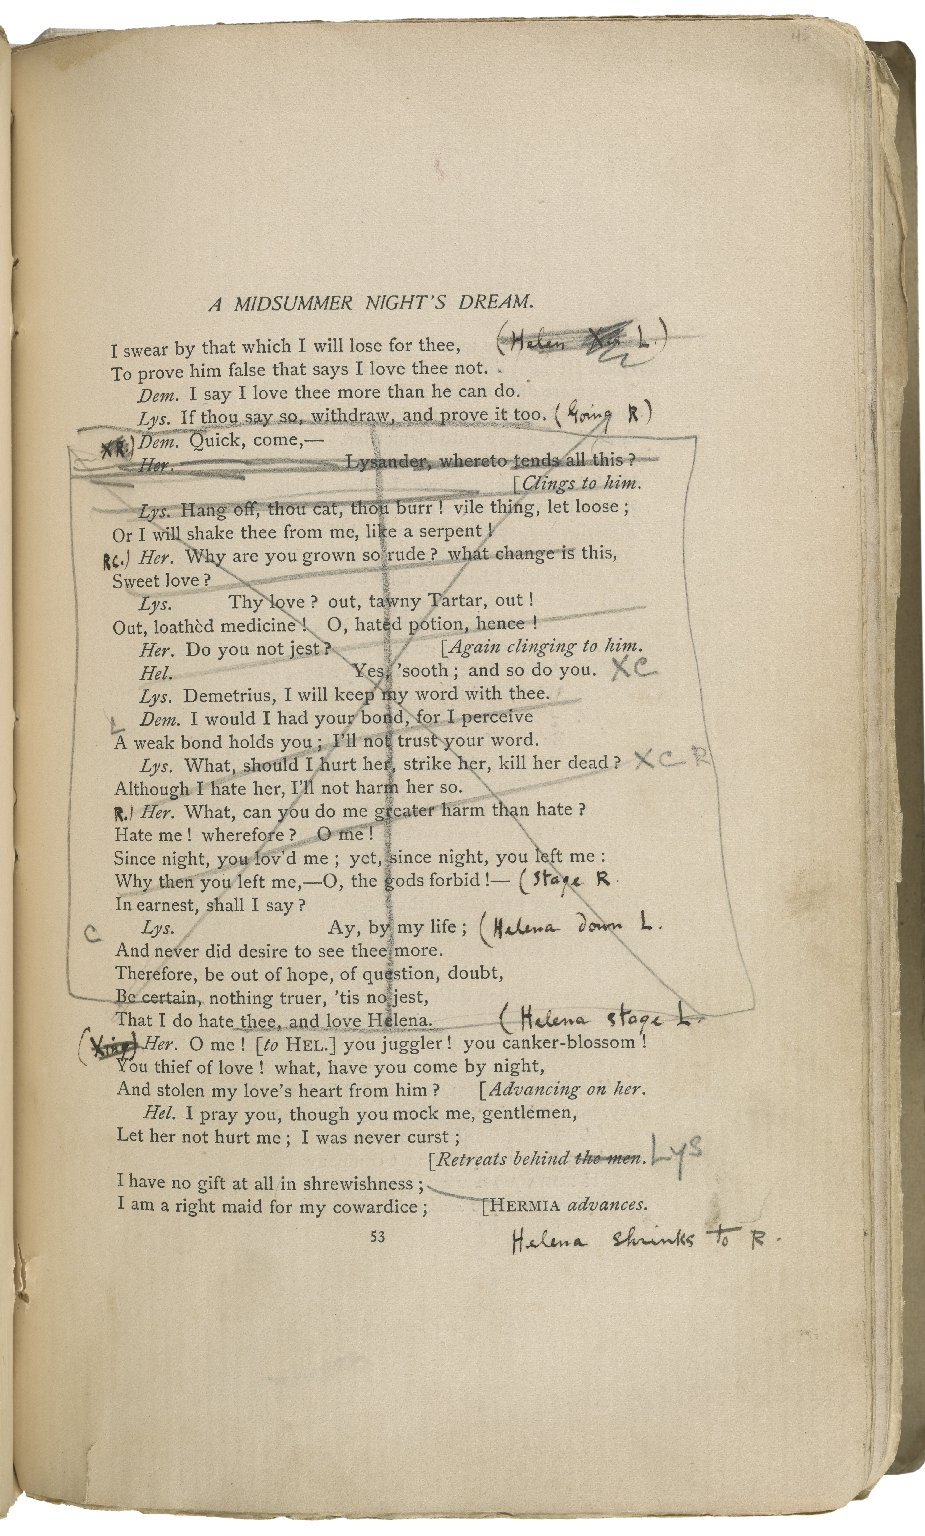 A midsummer night's dream ... Arranged for representation at Daly's Theatre, by Augustin Daly. Produced there for the first time, January 31, 1888.